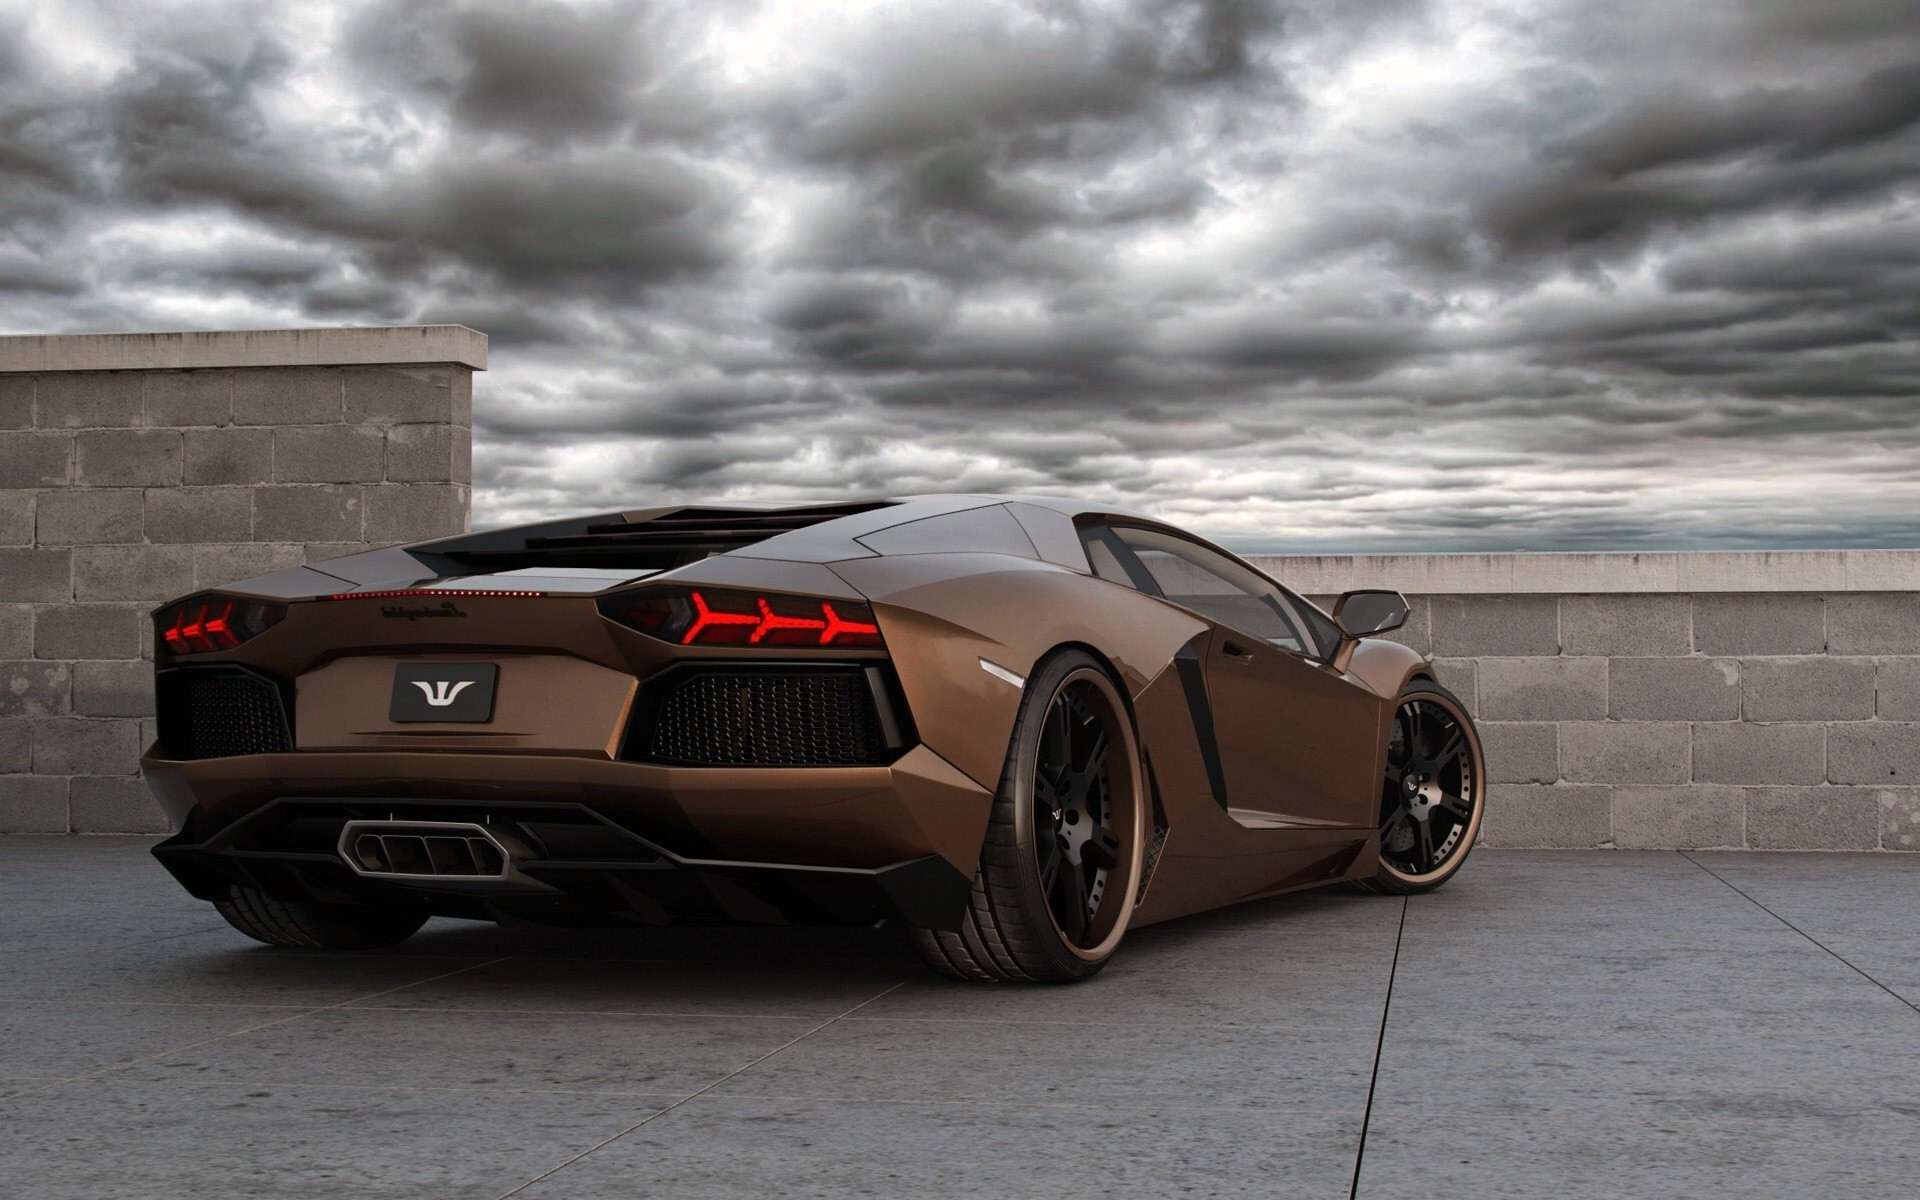 Aventador Lamborghini Car HD Wallpaper | HD Wallpapers